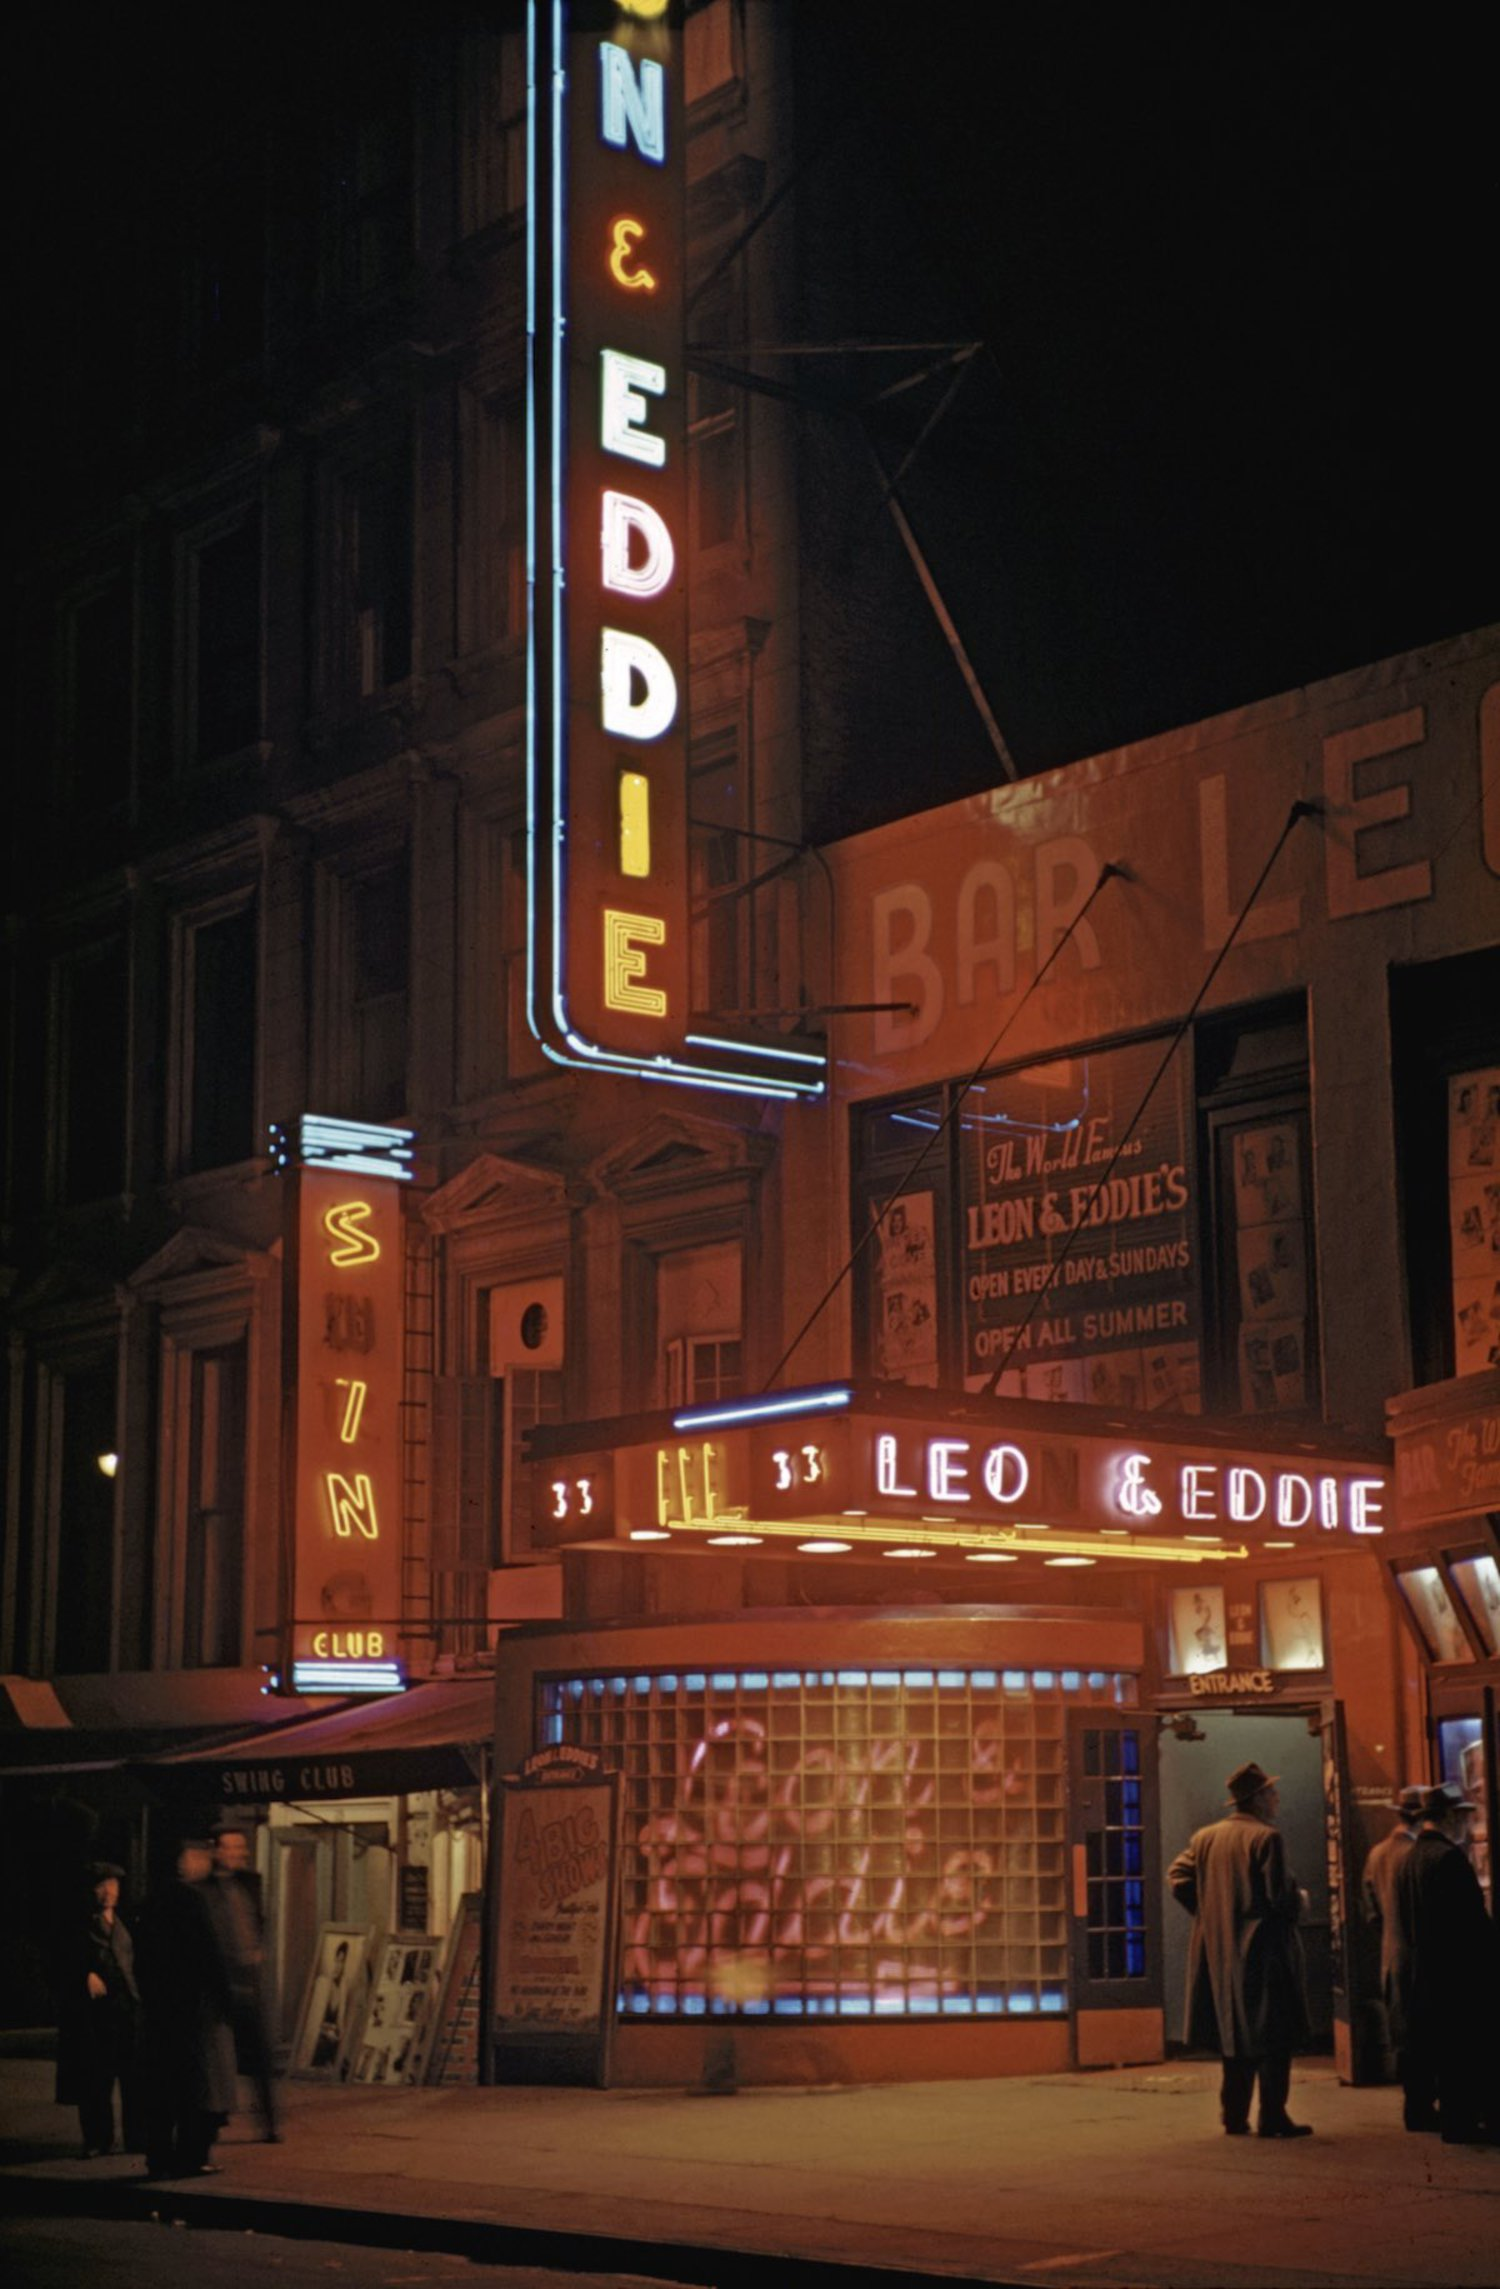 1946 Leon and Eddie's nightclub on 52nd street in Times Square (midtown) at night with patrons hanging out on the sidewalk.